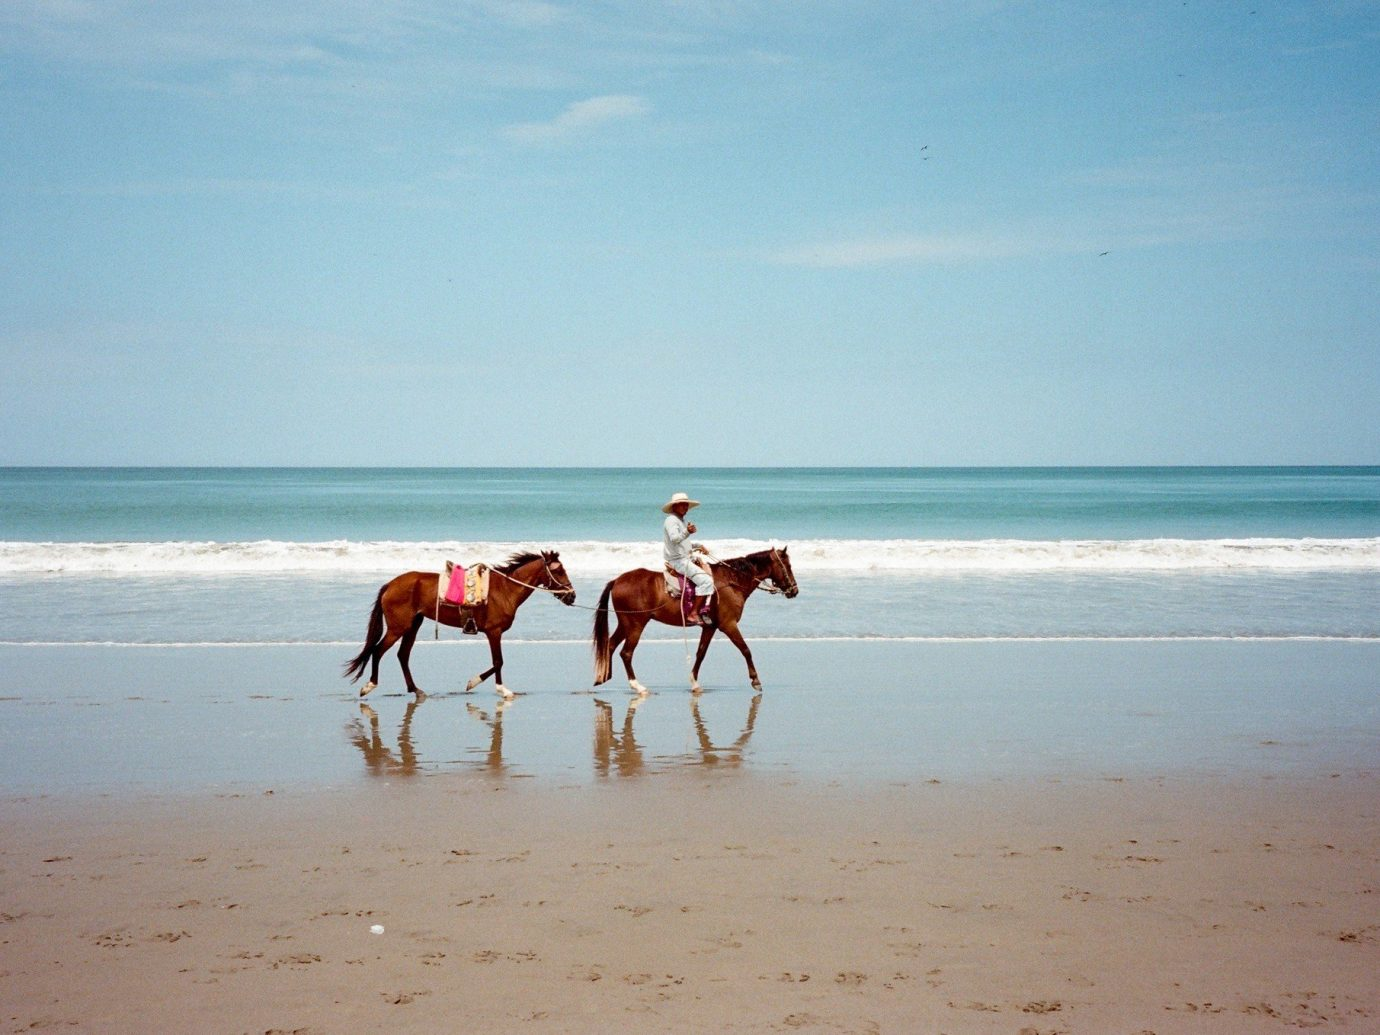 Travel Tips water outdoor Beach sky shore Sea body of water Nature Ocean vacation Coast horizon people sand wave cape sandy